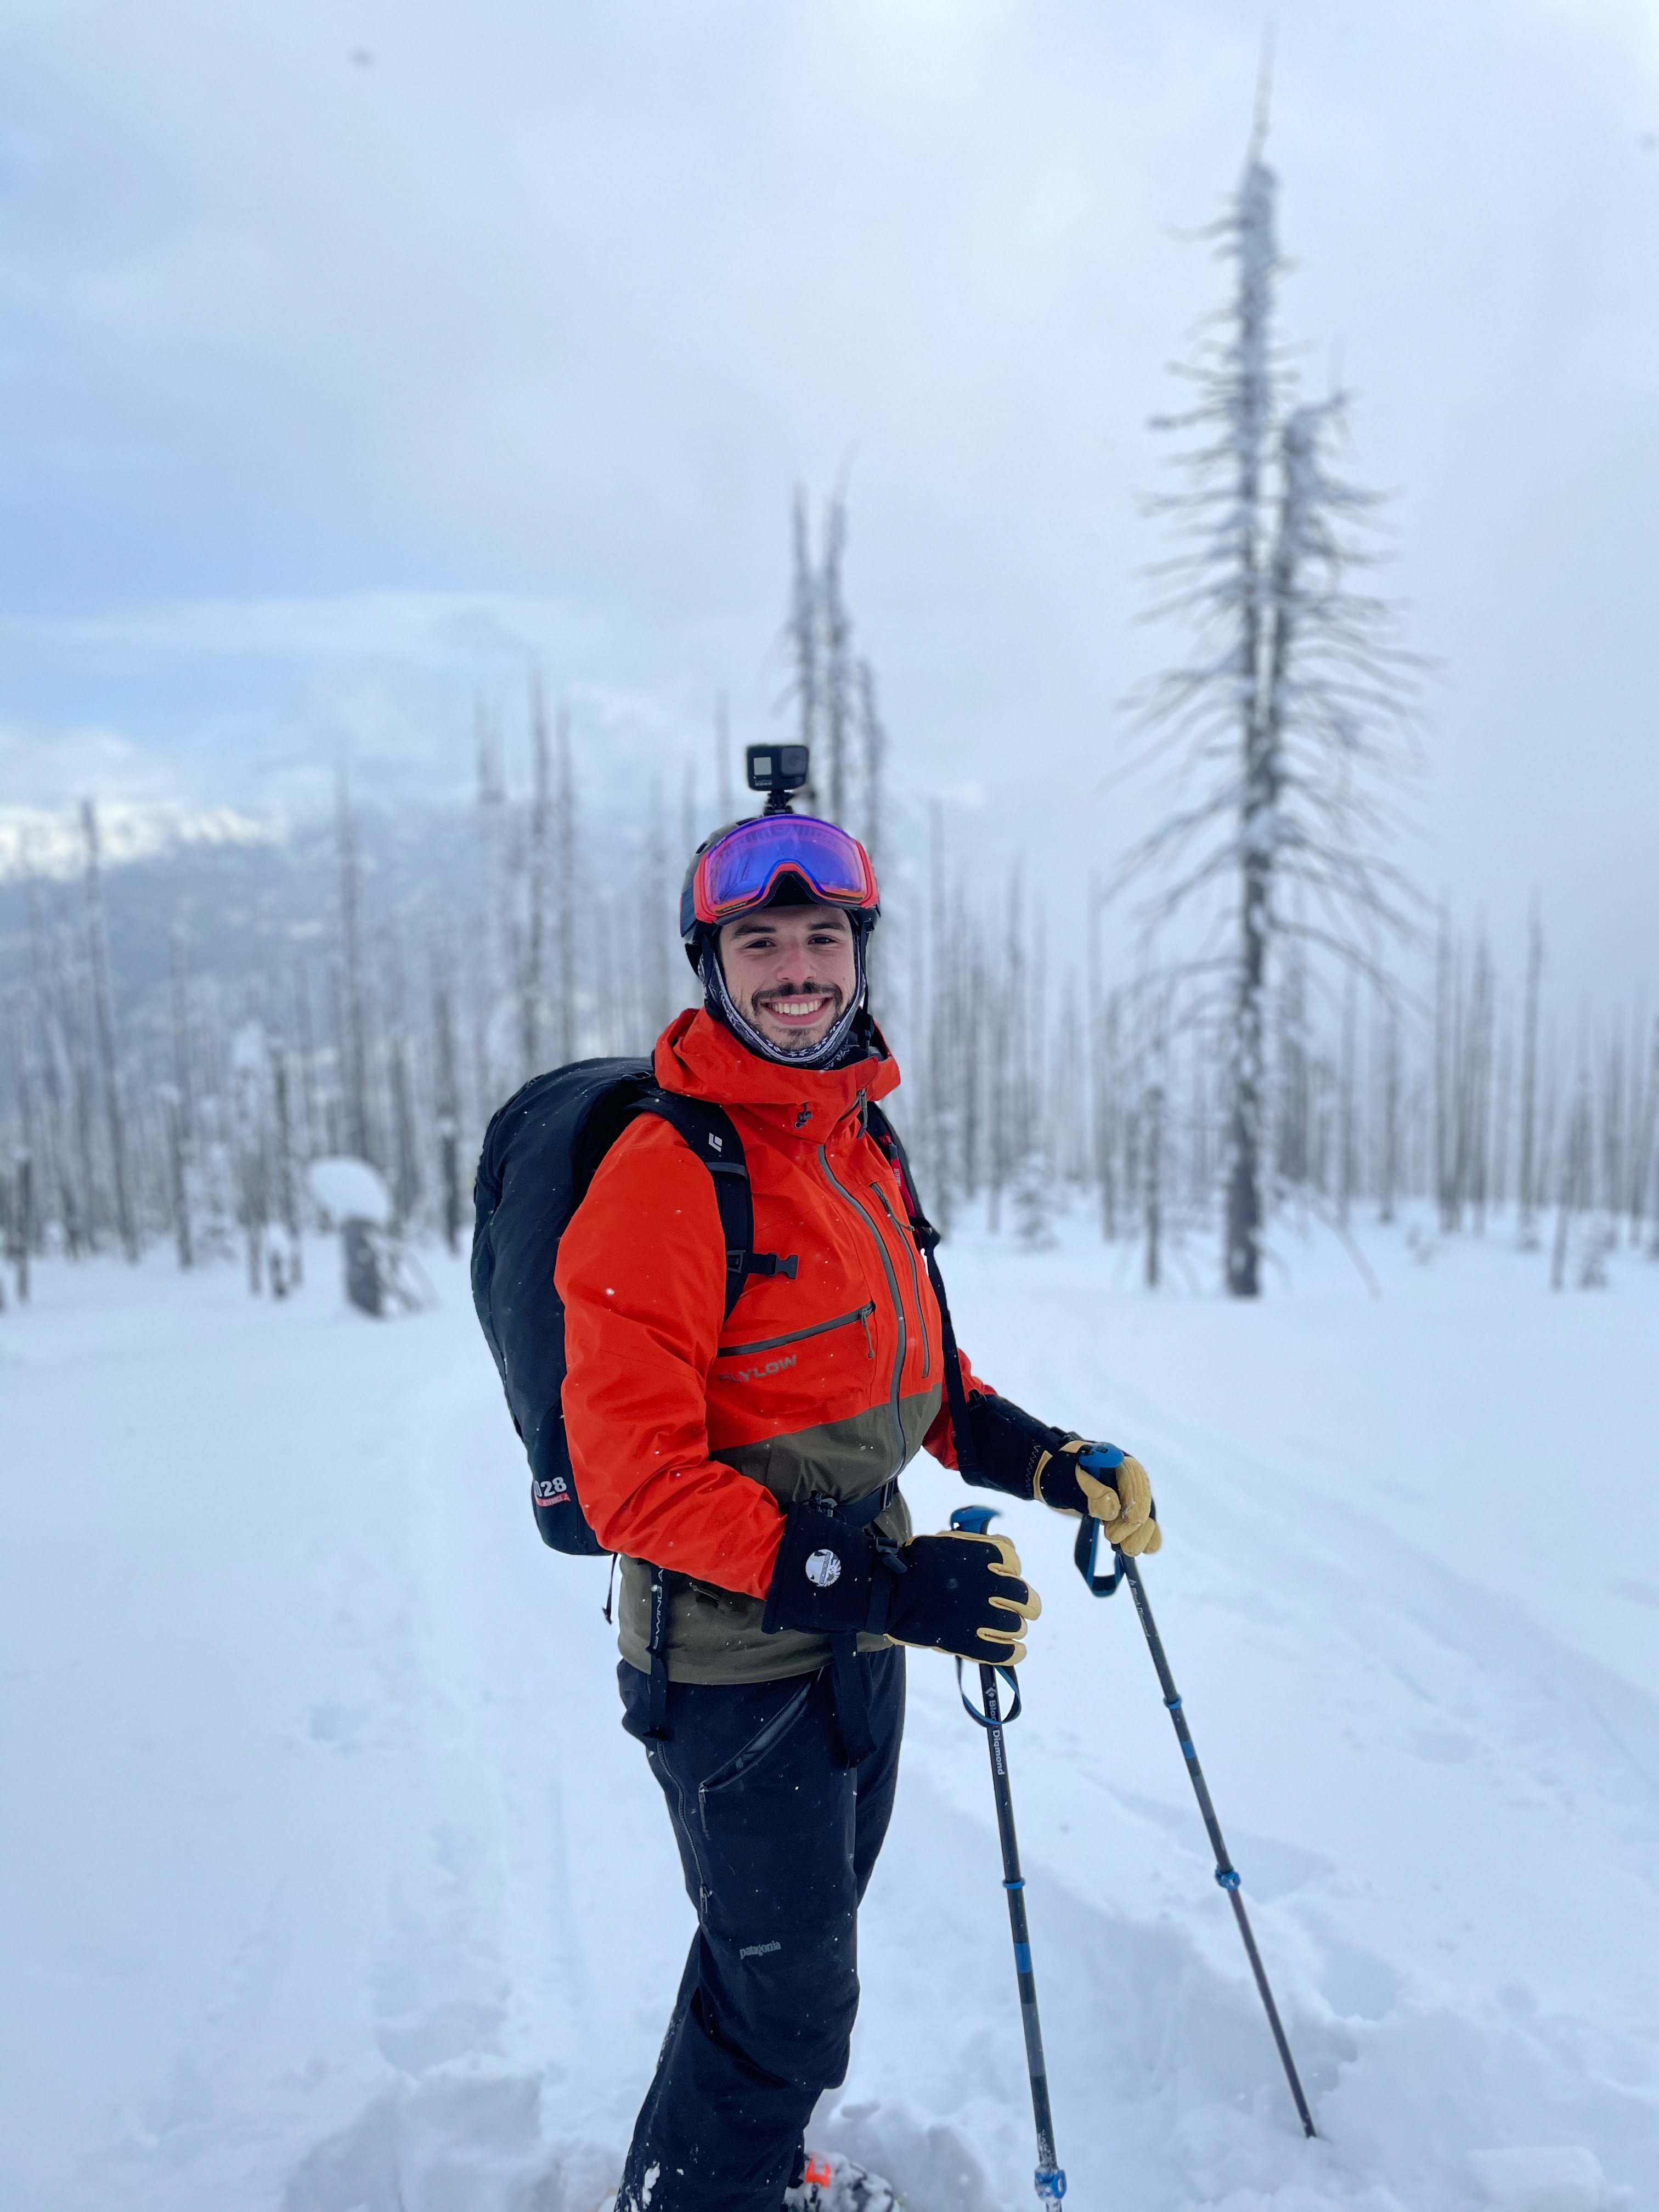 Yours truly, geared up to ski, standing among a field of sparse barren trees and snow